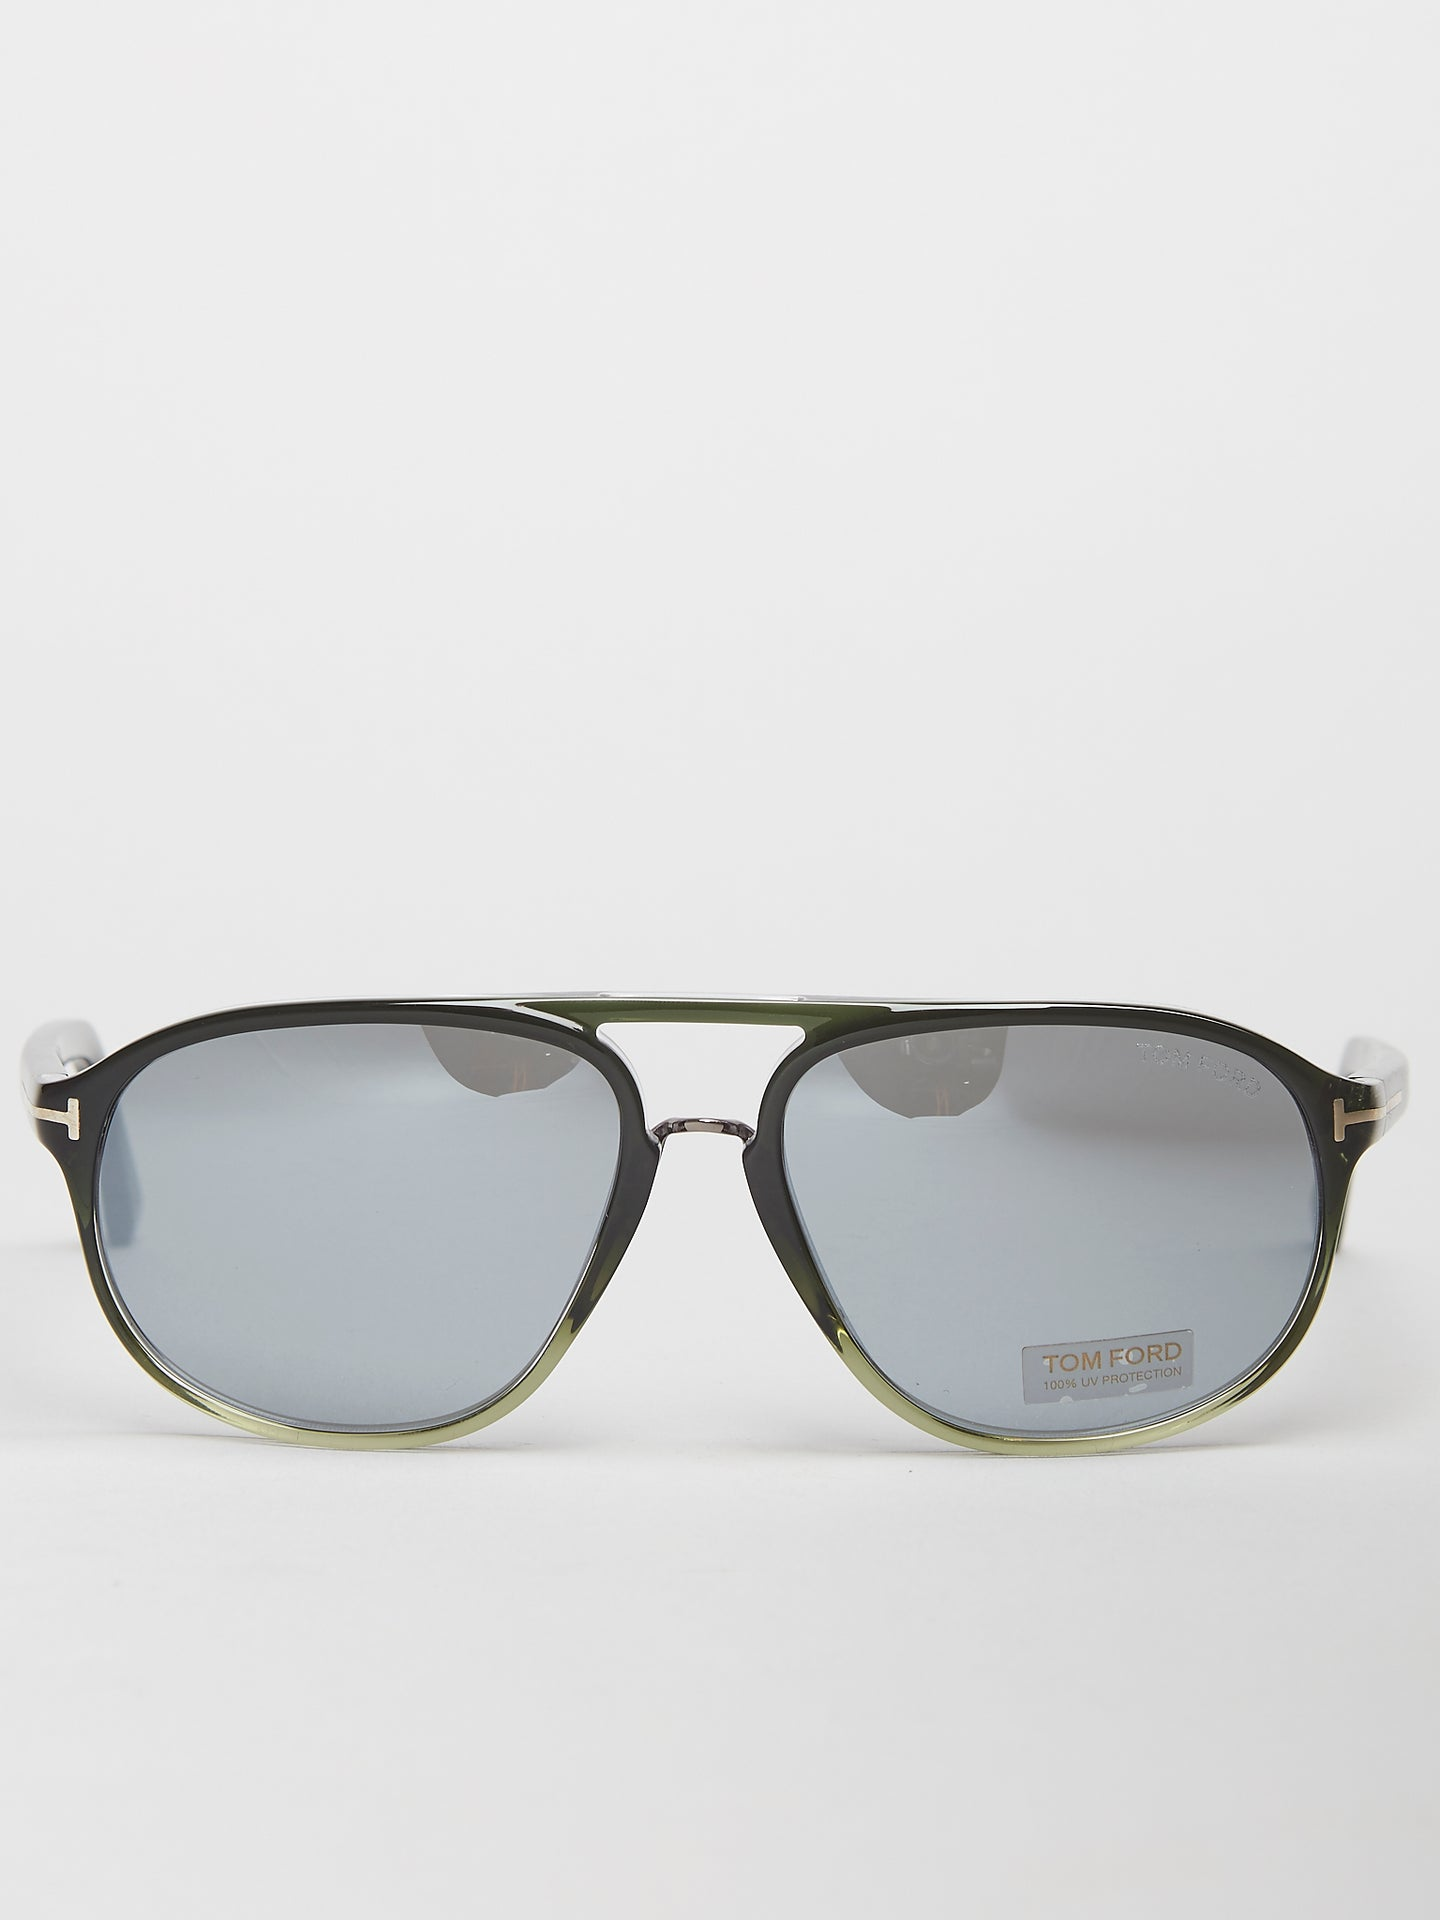 Tom Ford Jacob Acetate Aviator Dark Havana (TF0447 96C)